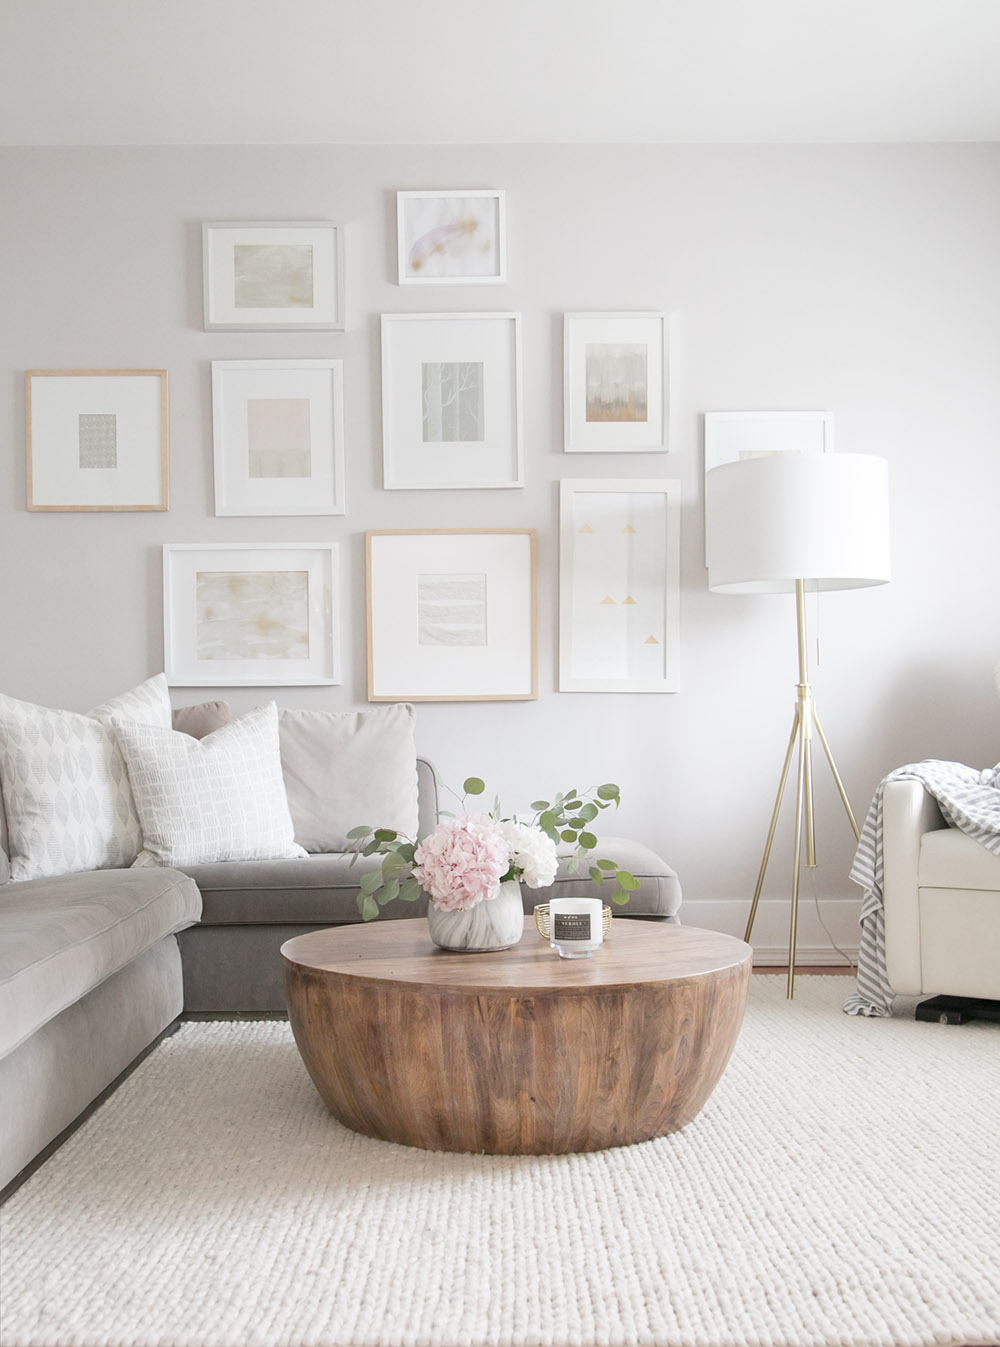 A family friendly living room design with round coffee table by Winter Daisy Interiors